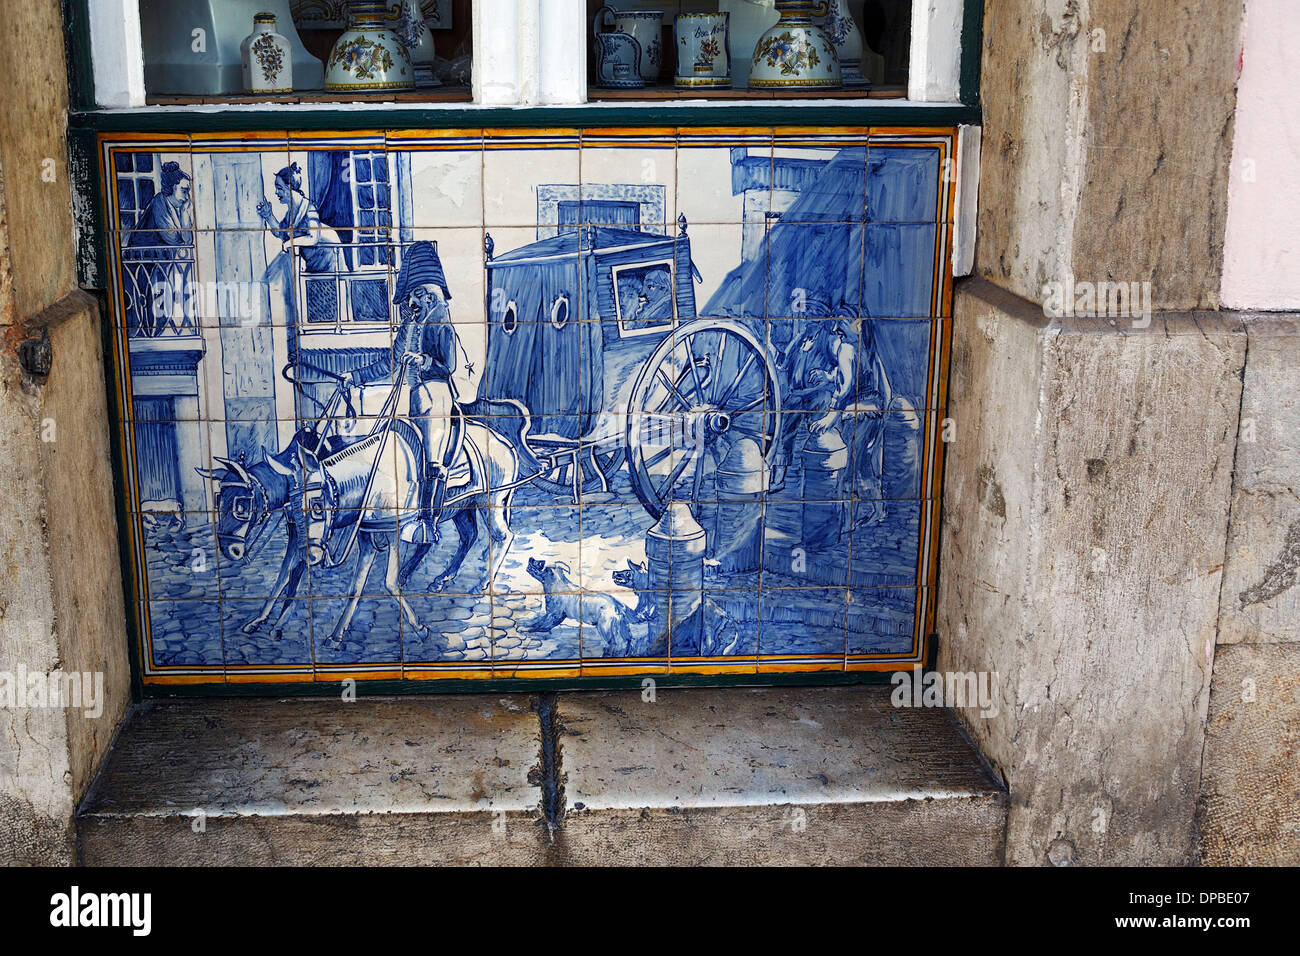 Tile Tableau Stock Photos & Tile Tableau Stock Images - Alamy